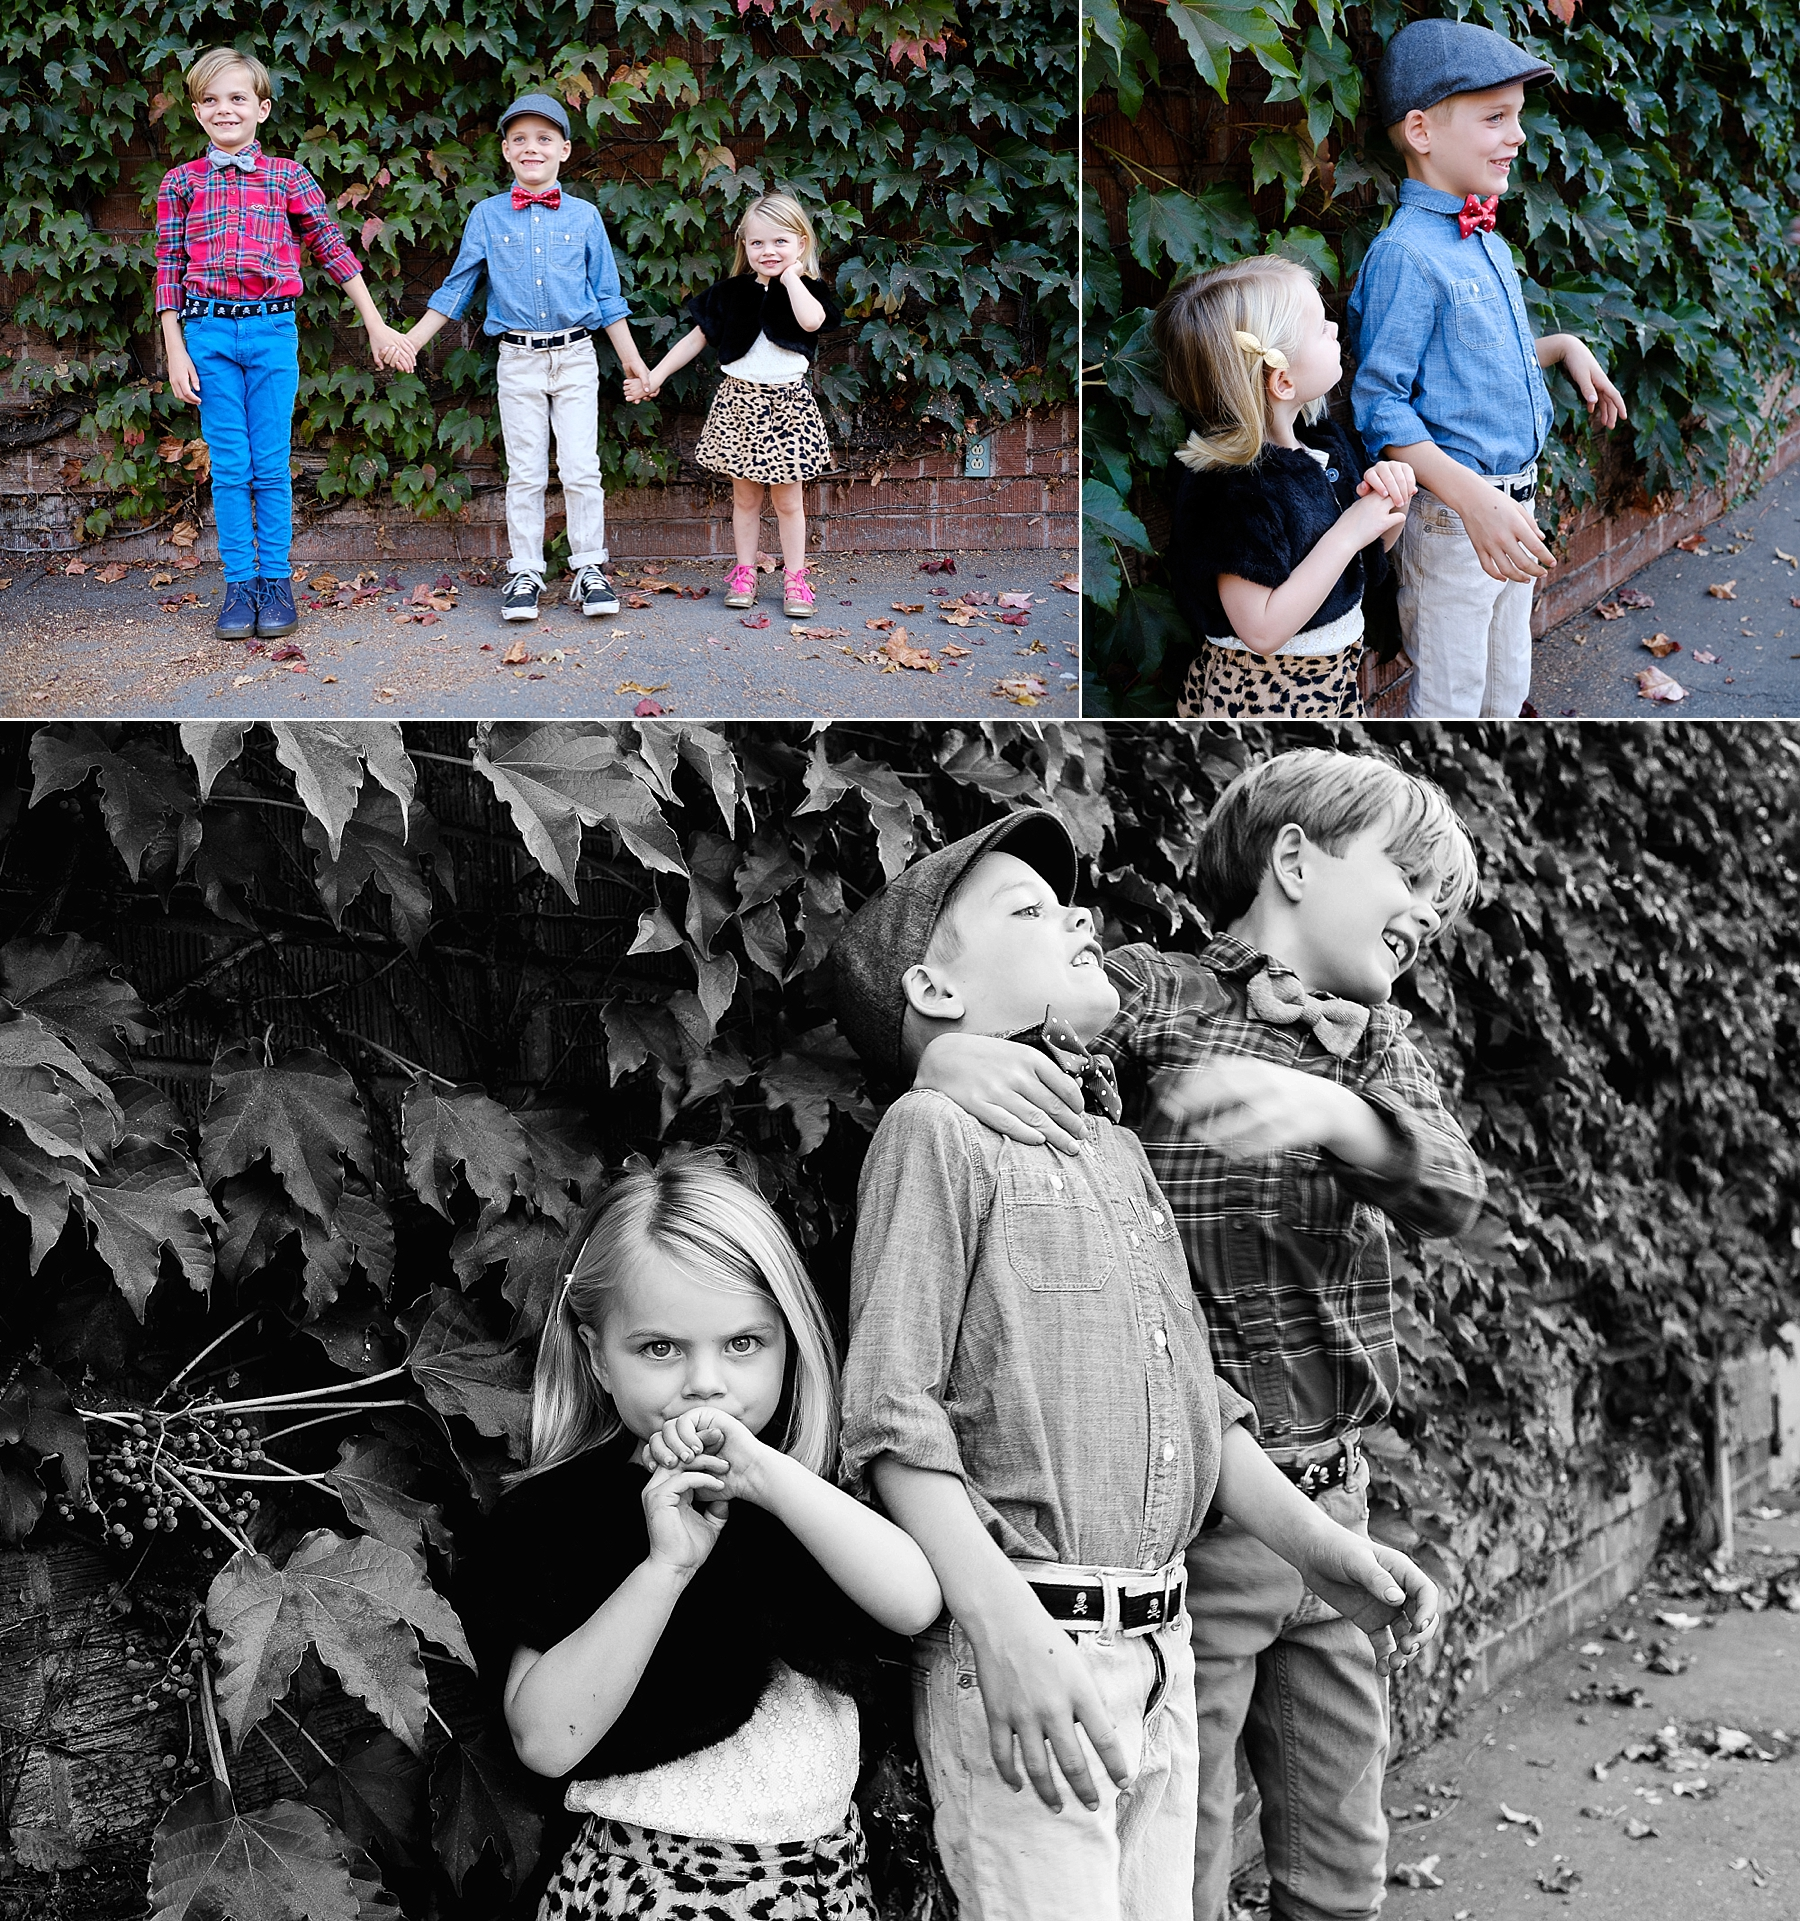 Children and Family Photo Ideas